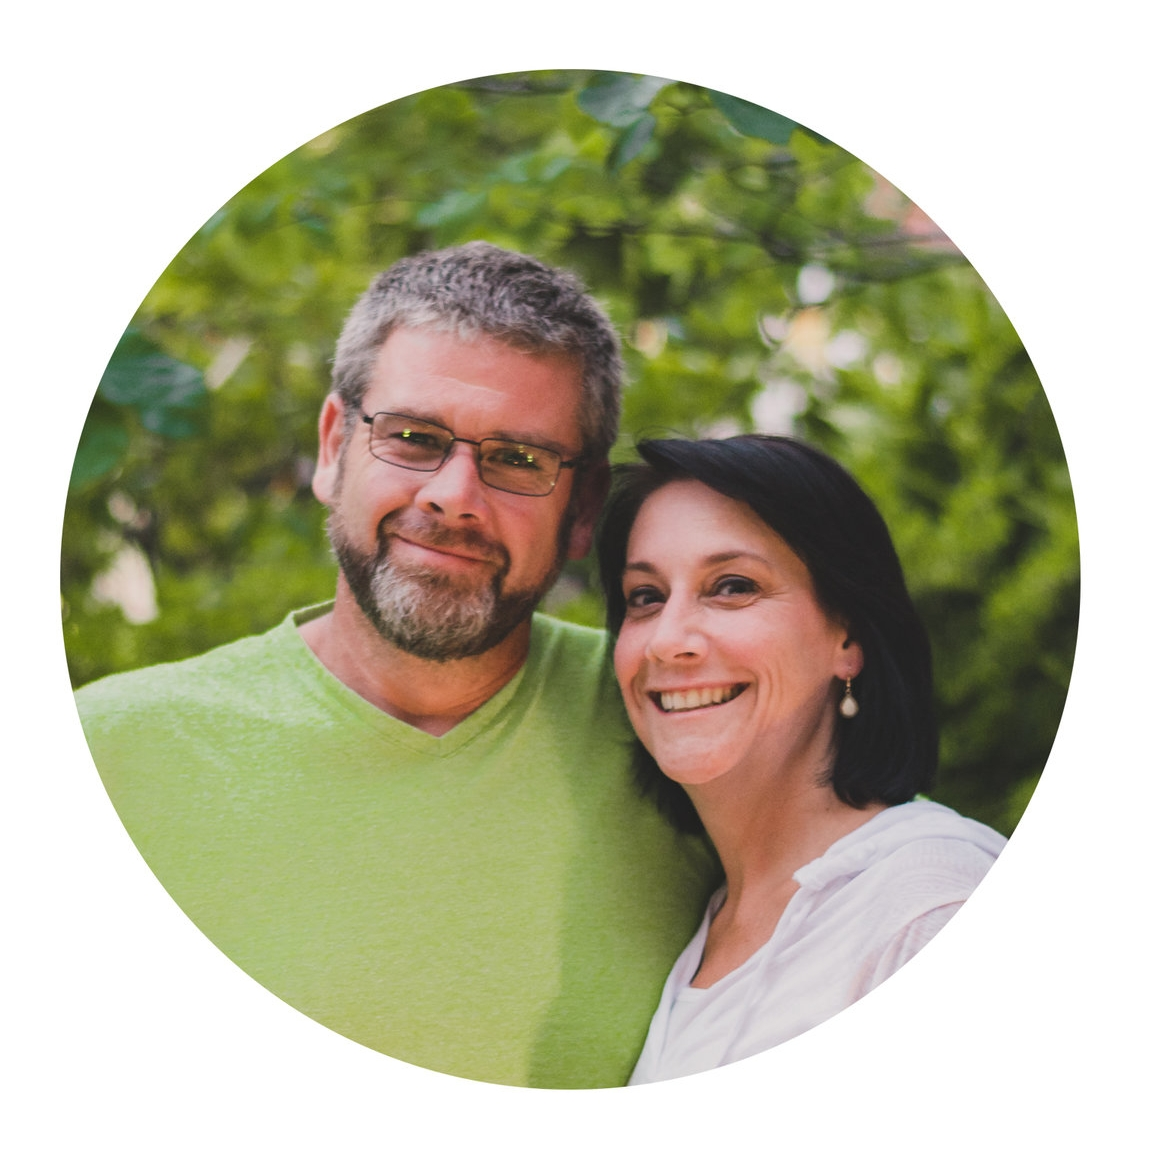 Joe & Lisa VanEssendelft    Campus:  Center Moriches   Day : Tuesdays   Time : 7pm   Location : 38 Poncho Dr. Mastic, NY 11950   Upcoming Dates : on break until September!